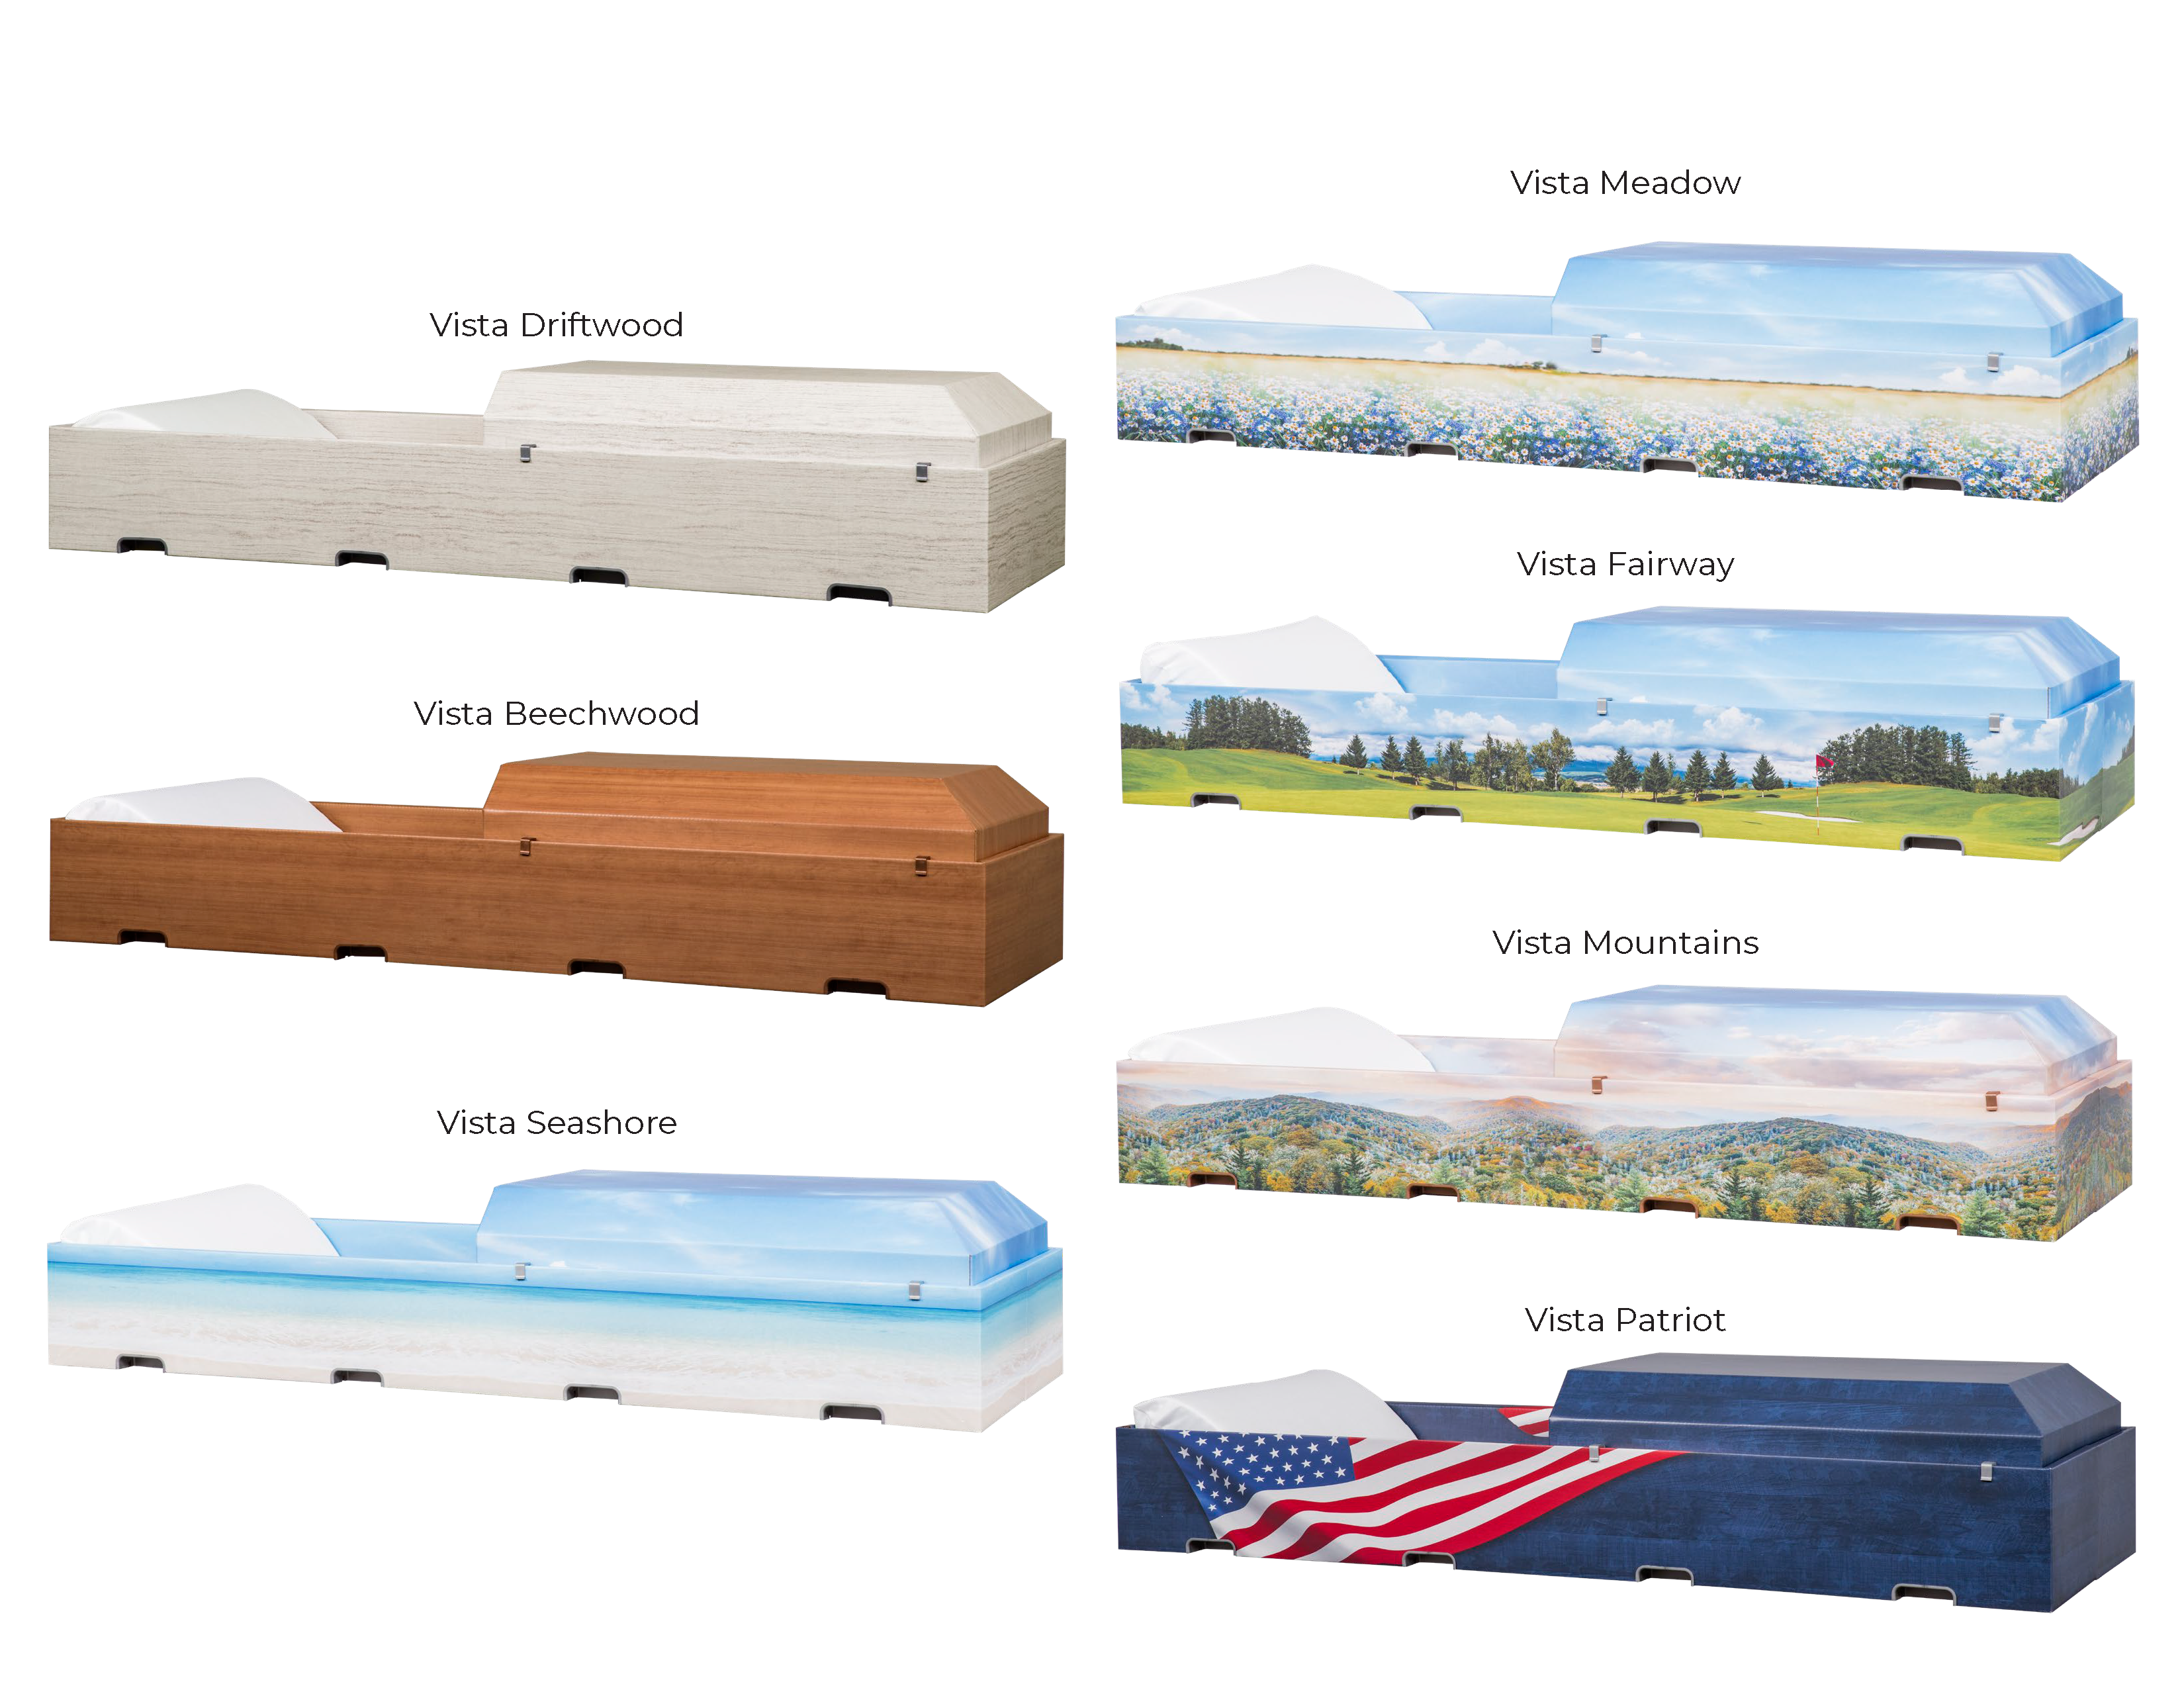 Starmark Cremation Products' new Artisan line